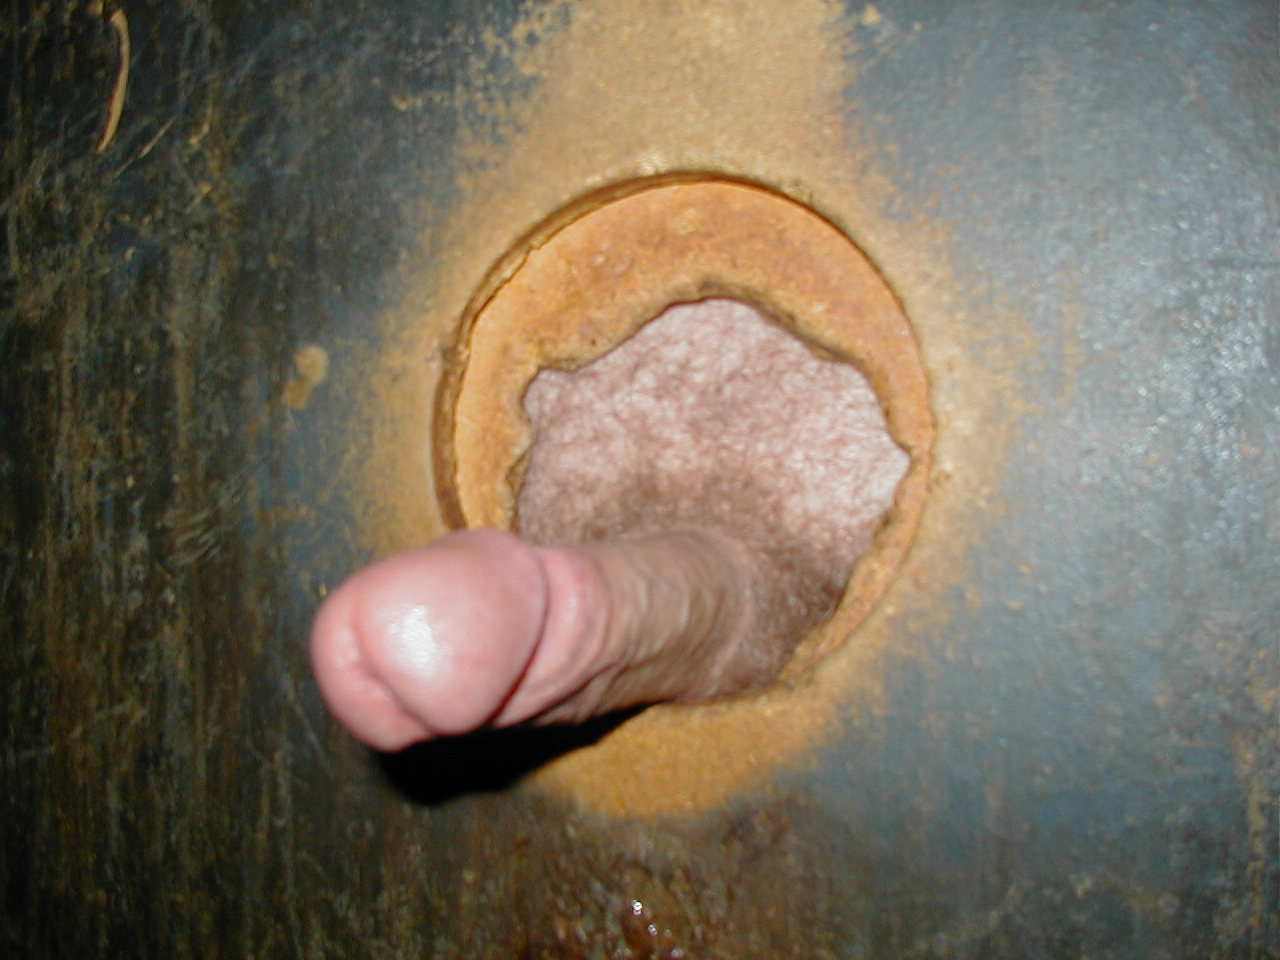 Glory hole dick pictures